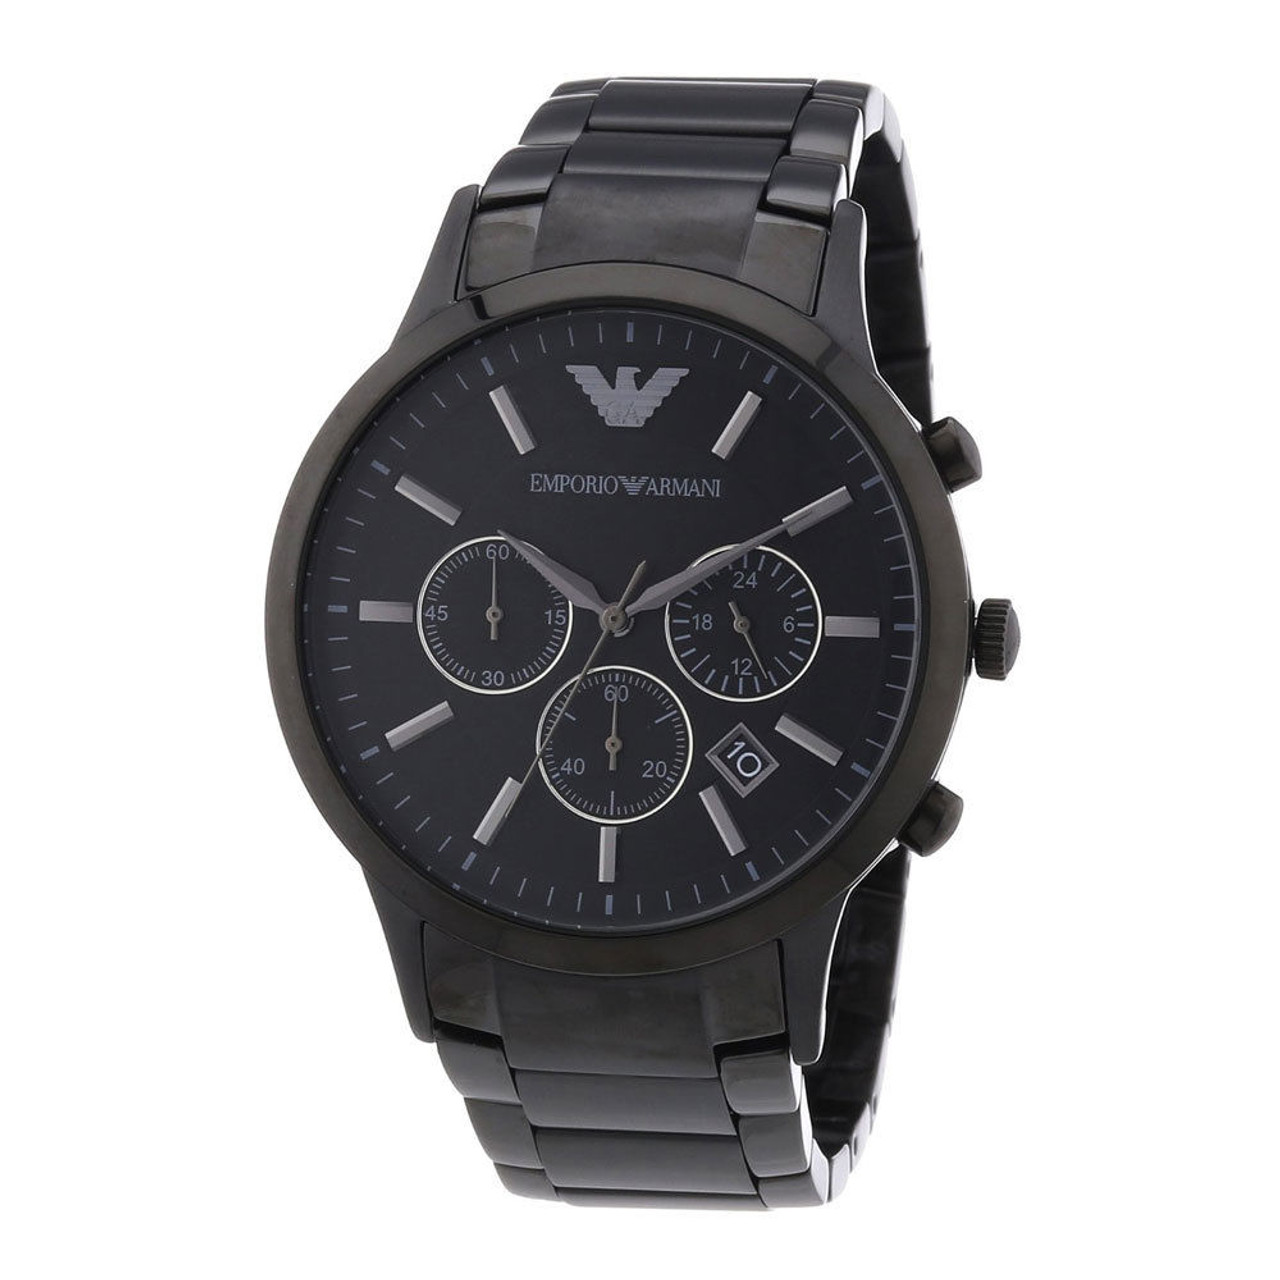 145e0d6102e1 Emporio Armani AR2453 Classic Chronograph Black Stainless Steel Mens Watch  - The Royal Gift Inc.